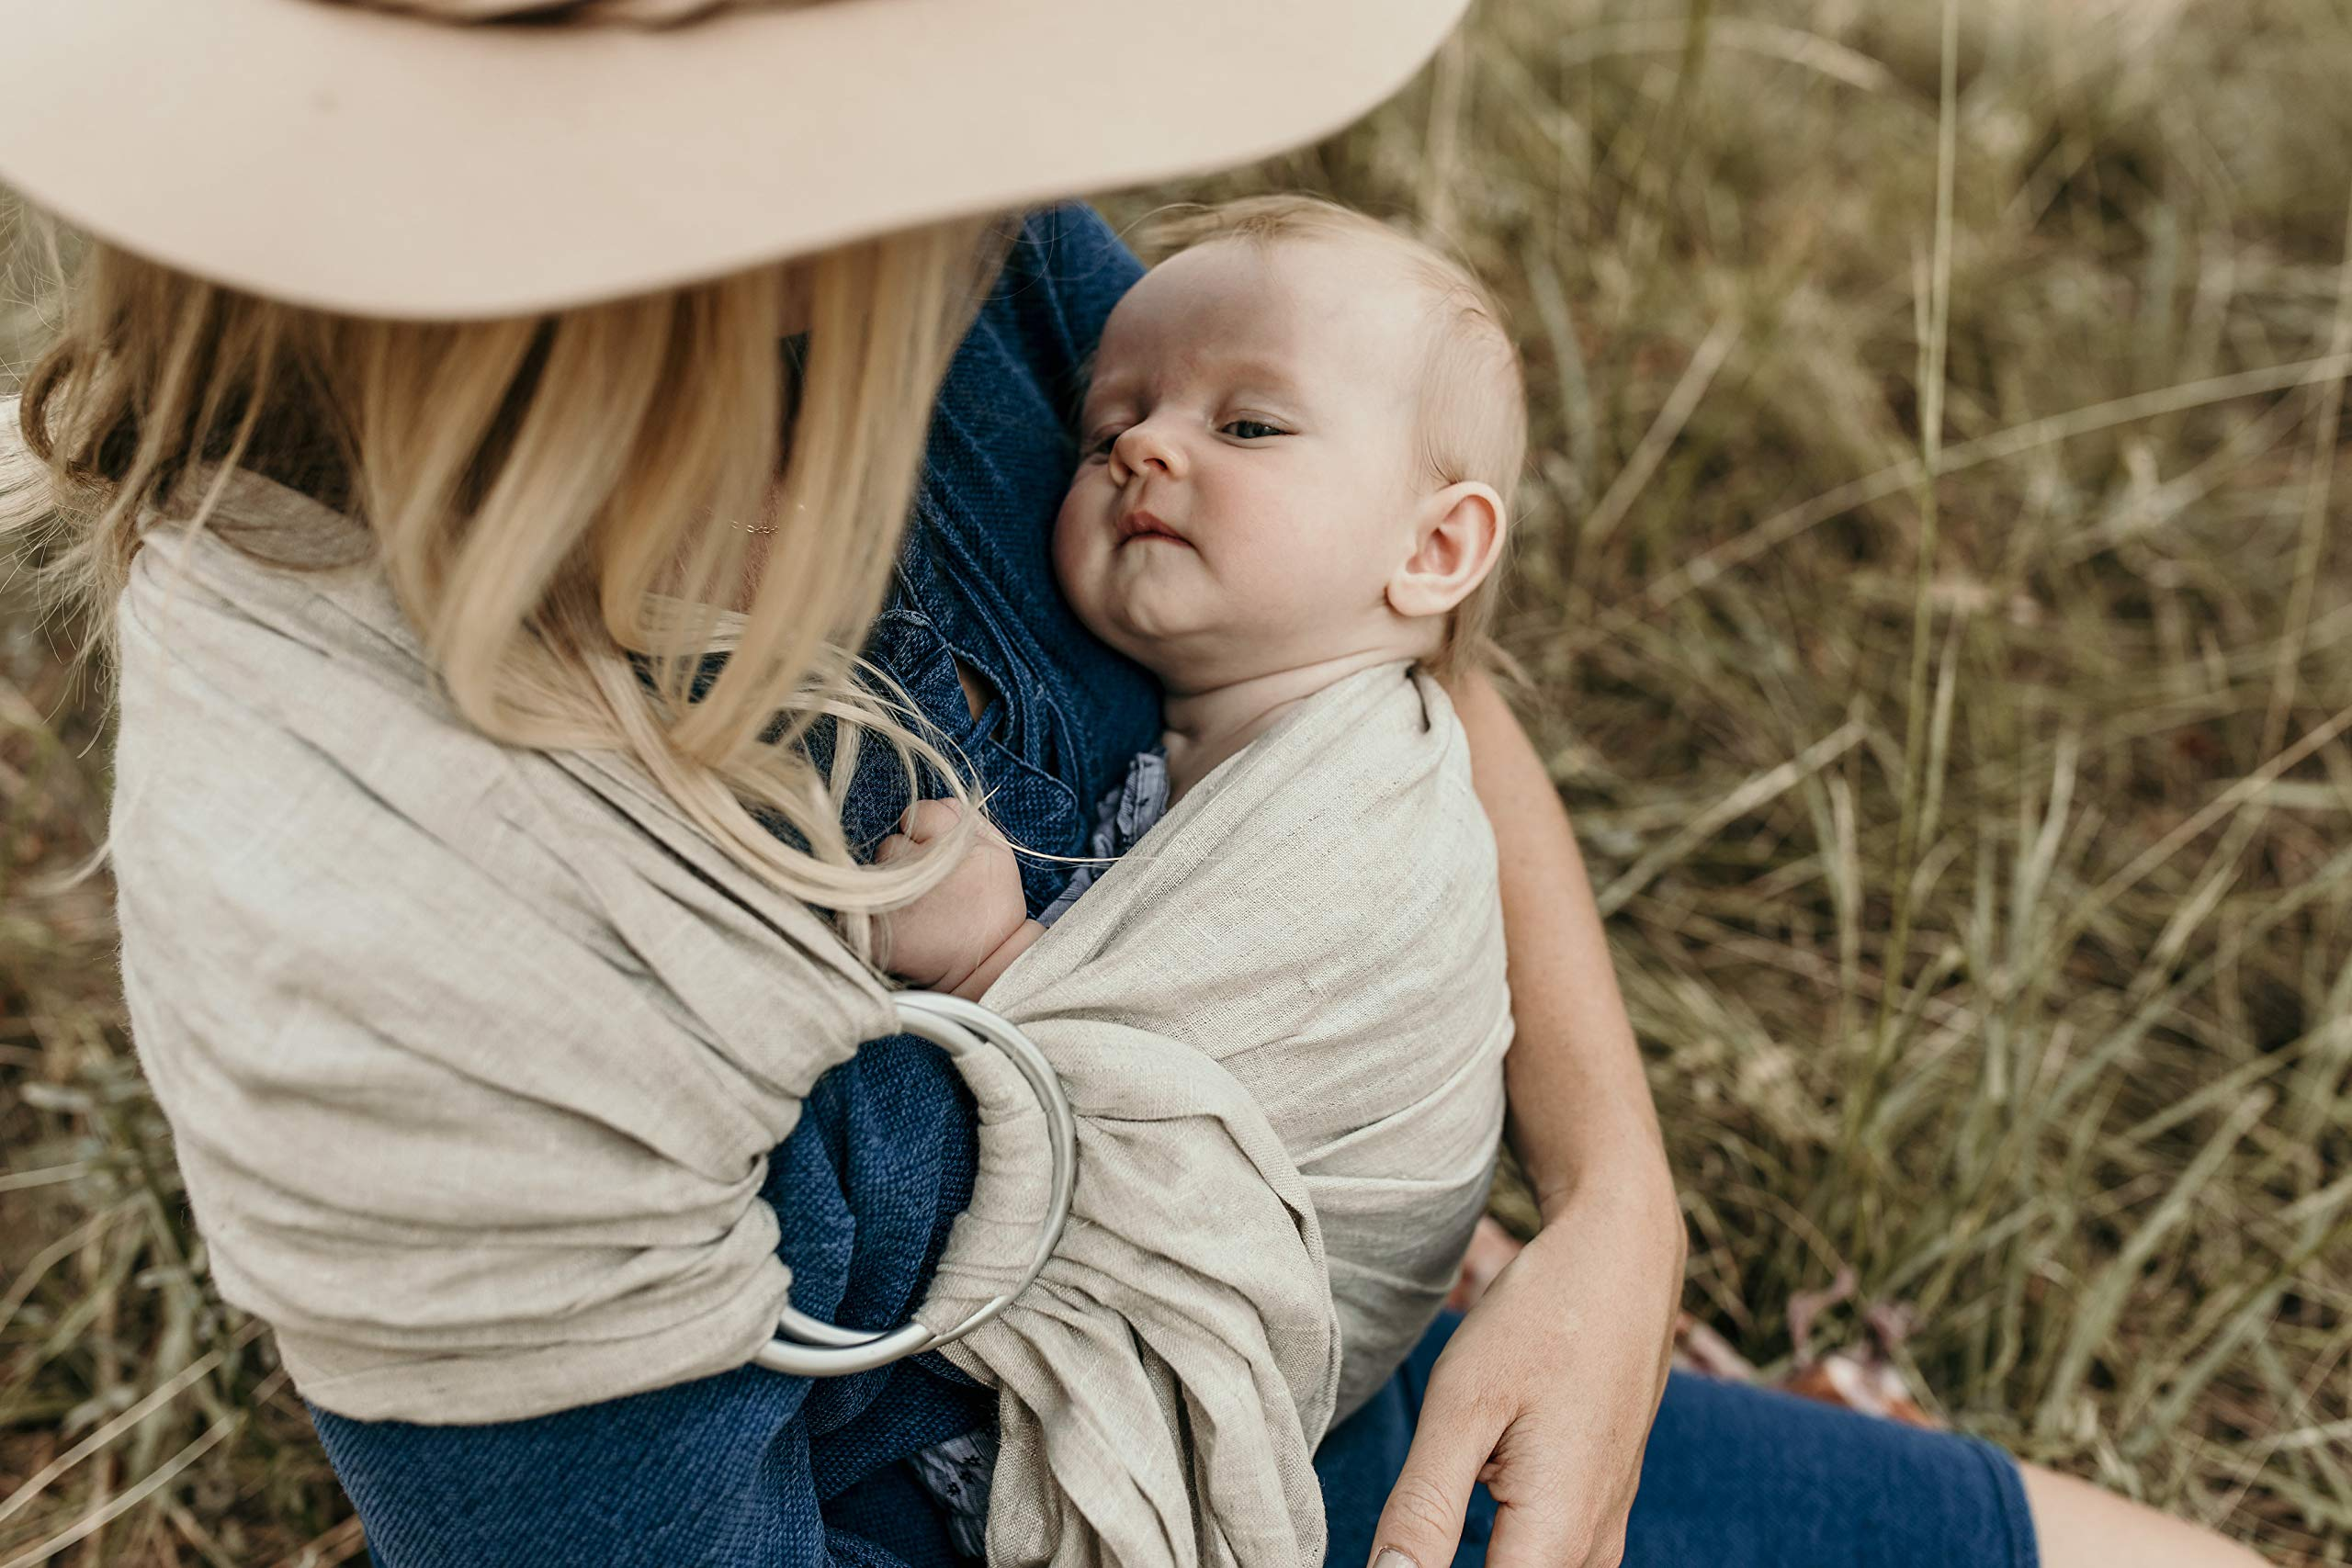 Hip Baby Wrap Linen Ring Sling Baby Carrier for Infants and Toddlers (Oat) Hip Baby Wrap Our slings are all fair trade and eco-friendly. Made with beautiful 100% linen, breathable fabric and with top quality solid aluminum sling rings. For babies 8 - 35 lbs. 6